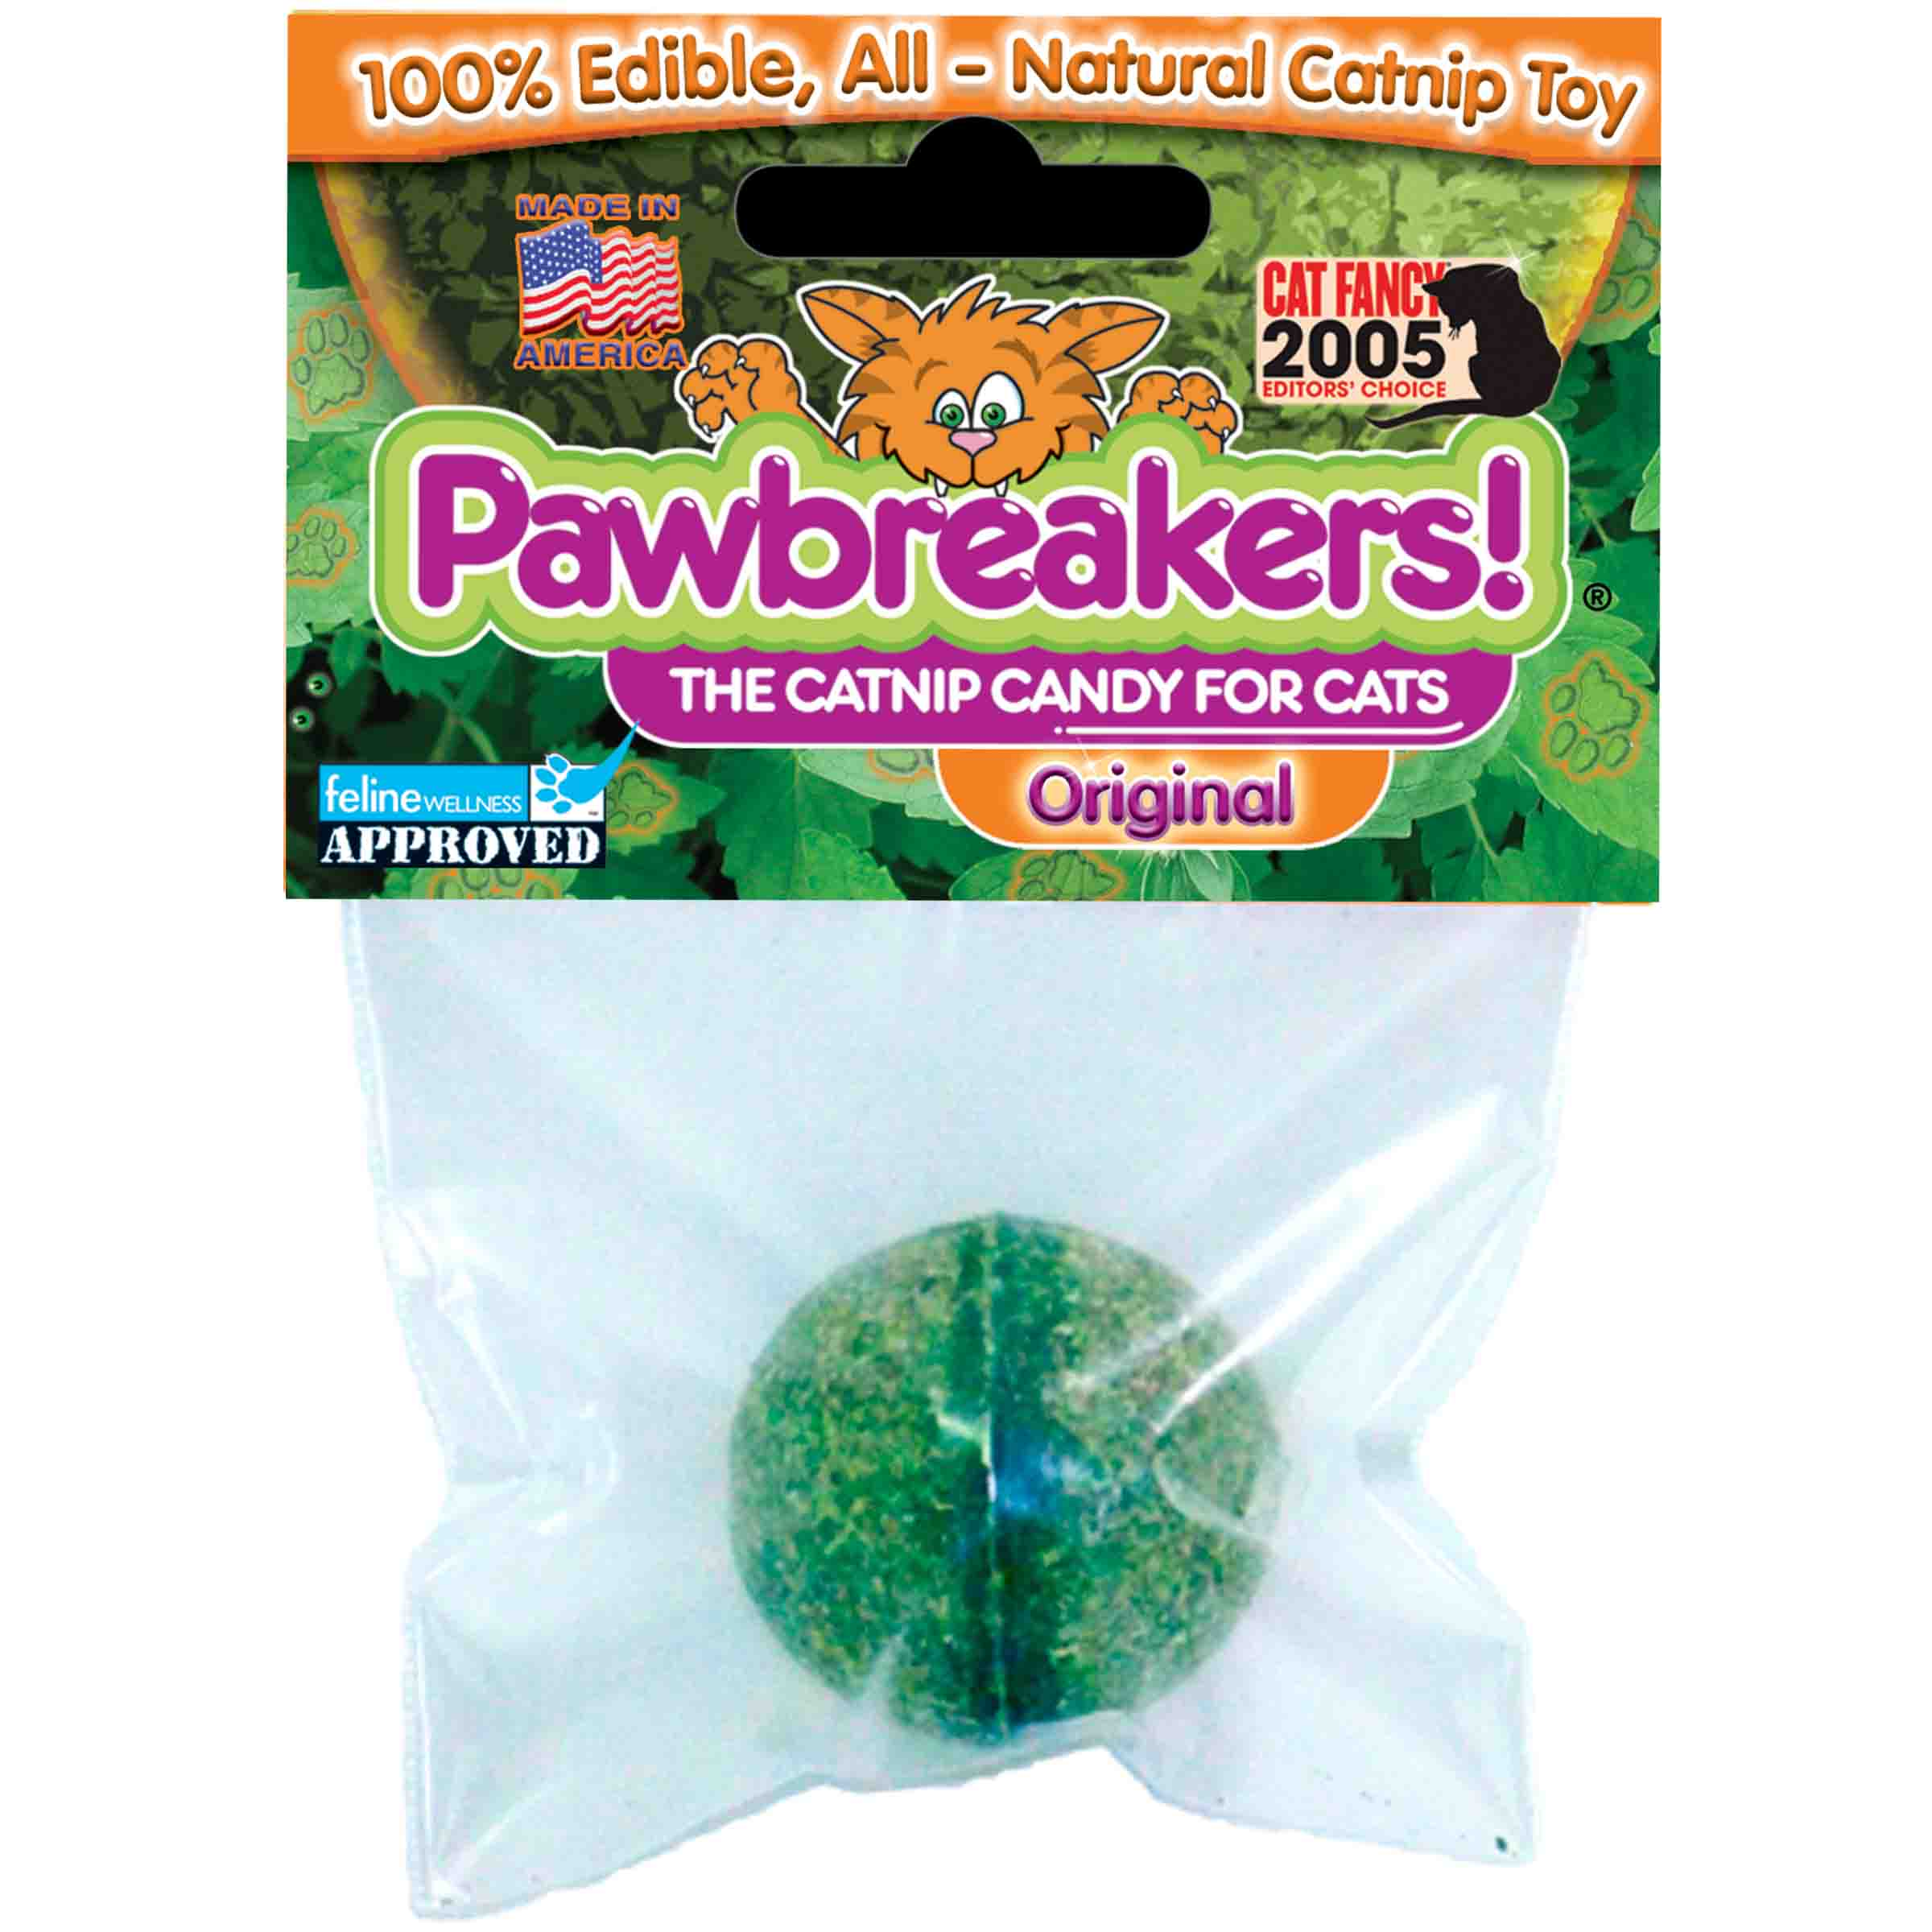 Pawbreakers Original